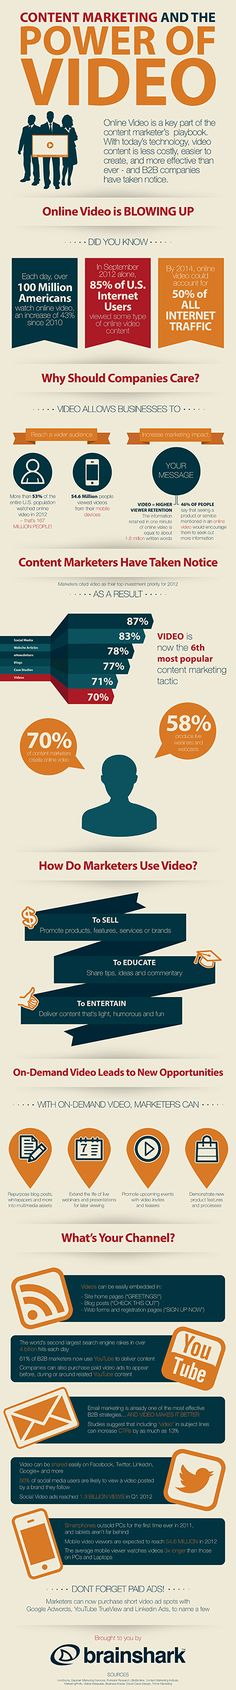 The Importance of Video in Social Media Marketing [INFOGRAPHIC]